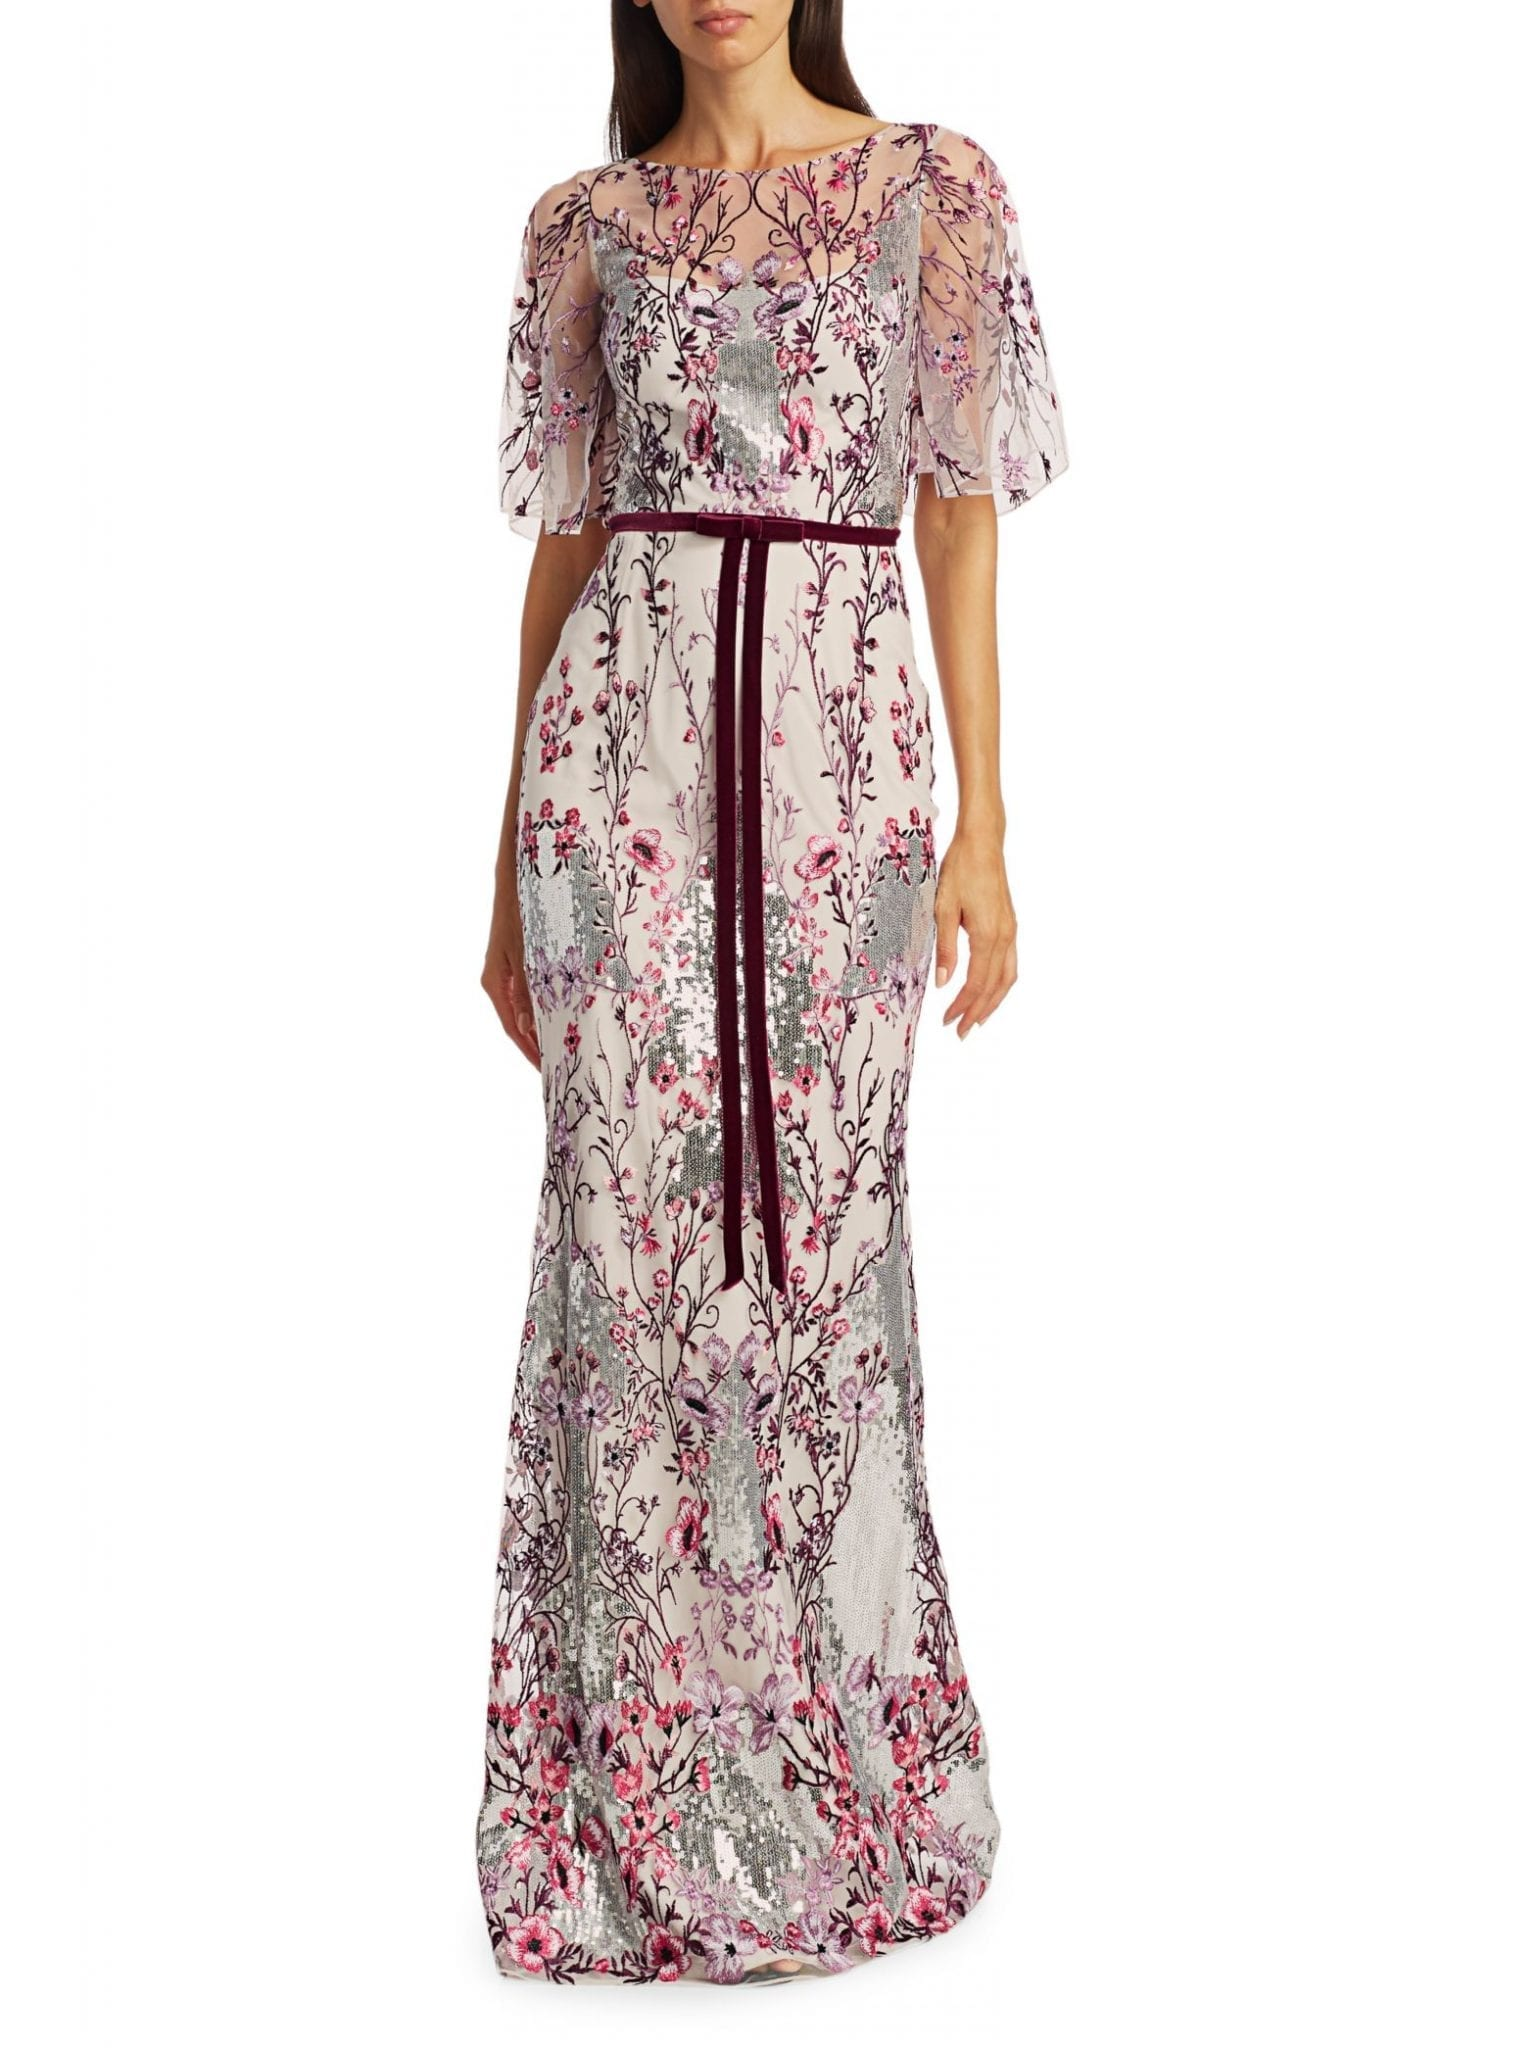 MARCHESA NOTTE Embellished Floral-Embroidered Gown